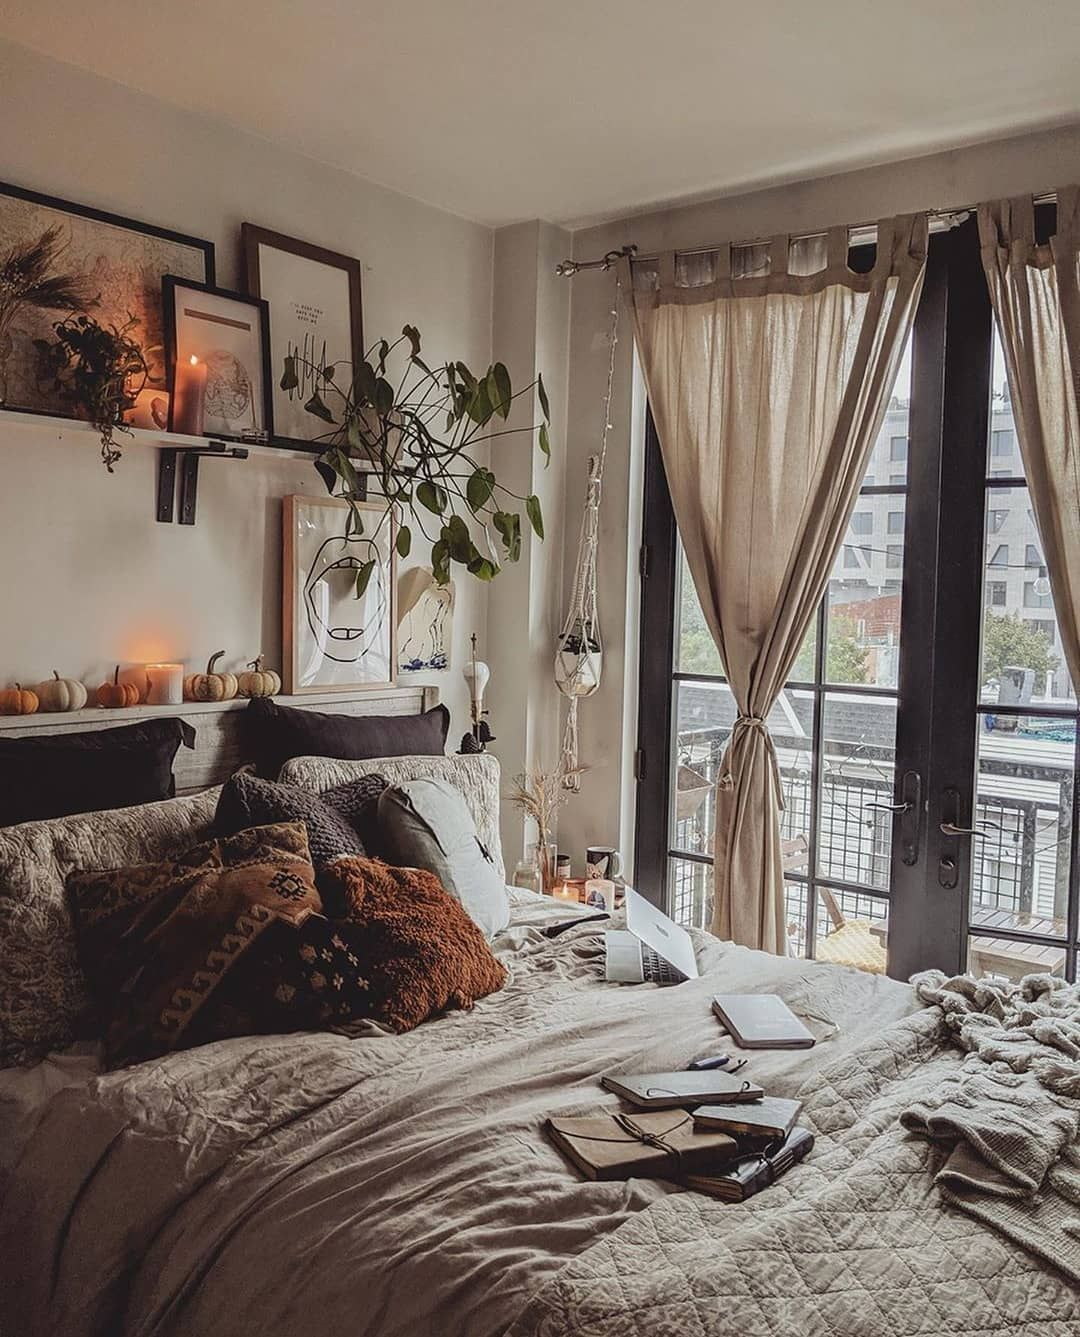 30 ideas to decor your bed room in 2019 winter you can copy  ibaz Dorm Room Ideas Bed Copy DECOR ibaz Ideas Room Winter